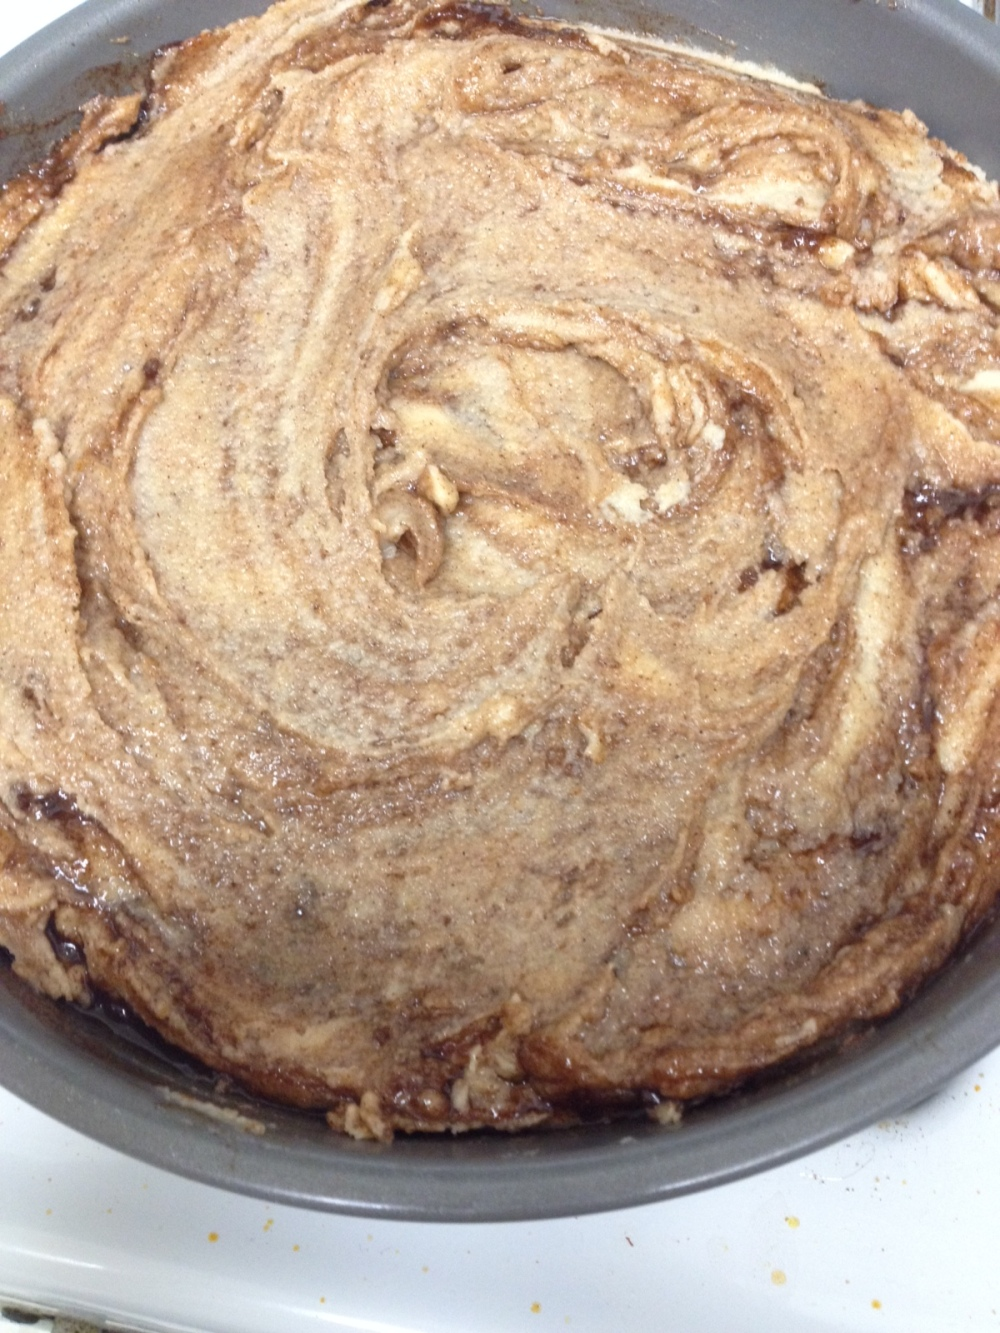 Swirled topping and cake baked!